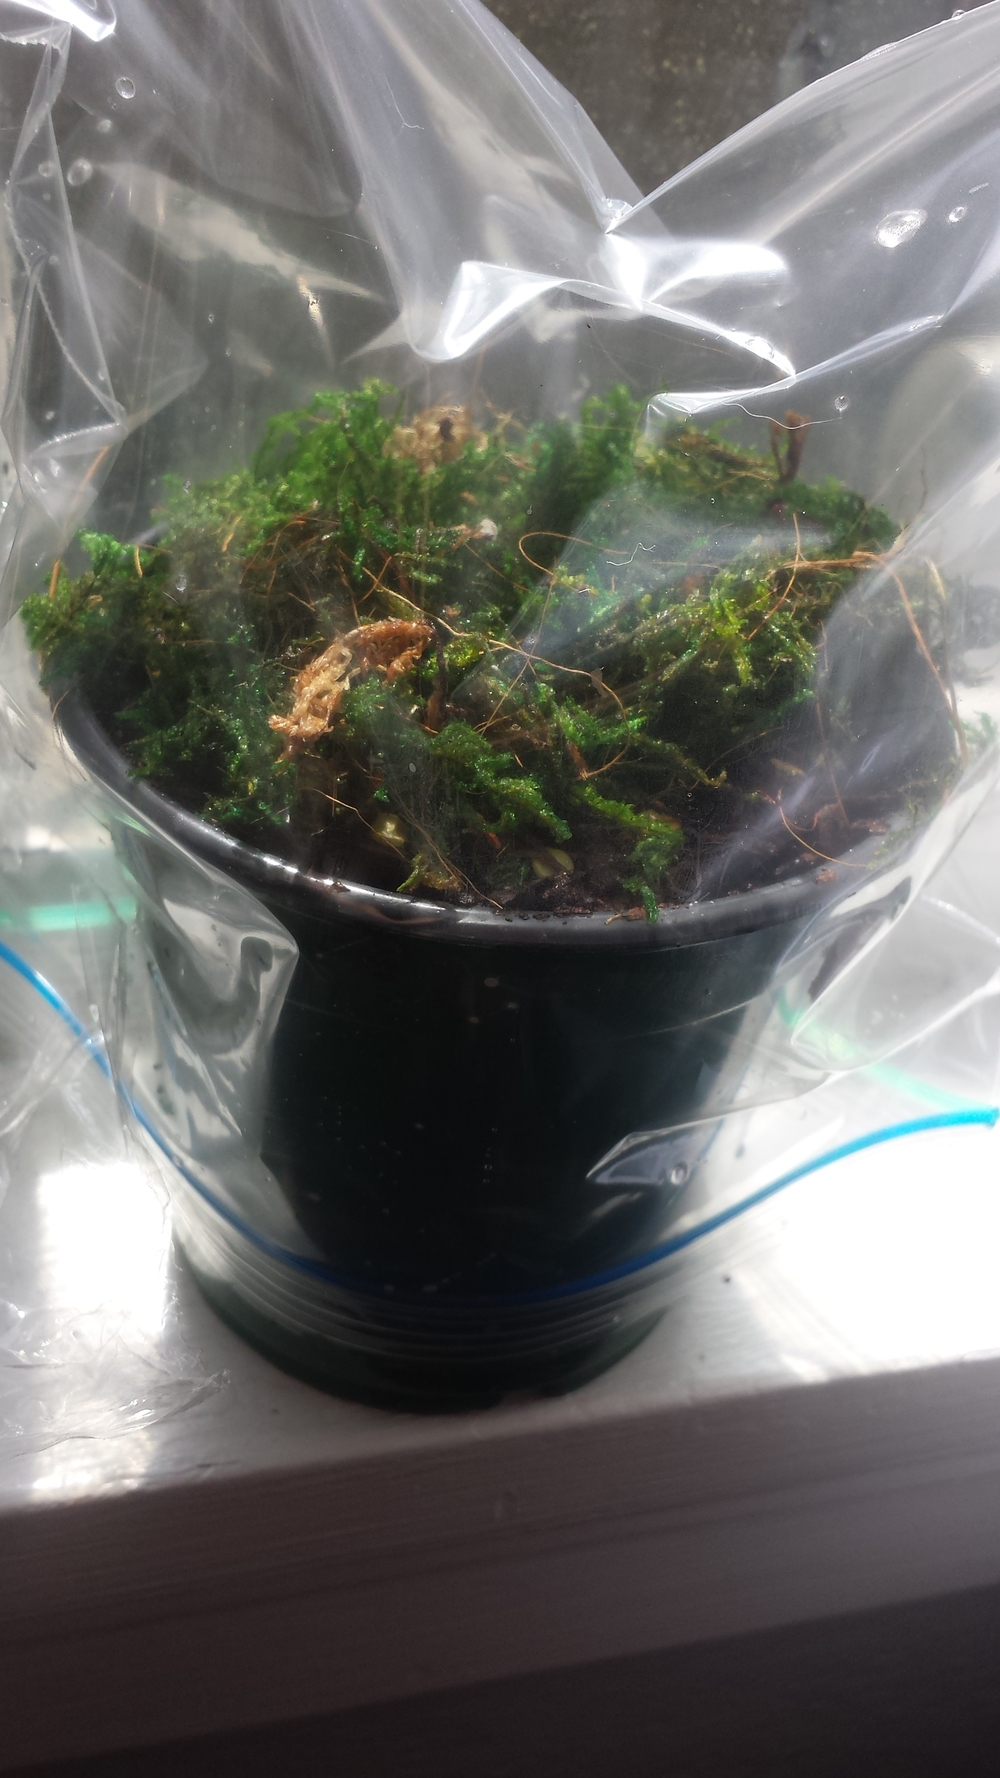 With sphagnum moss covered by a sandwich bag